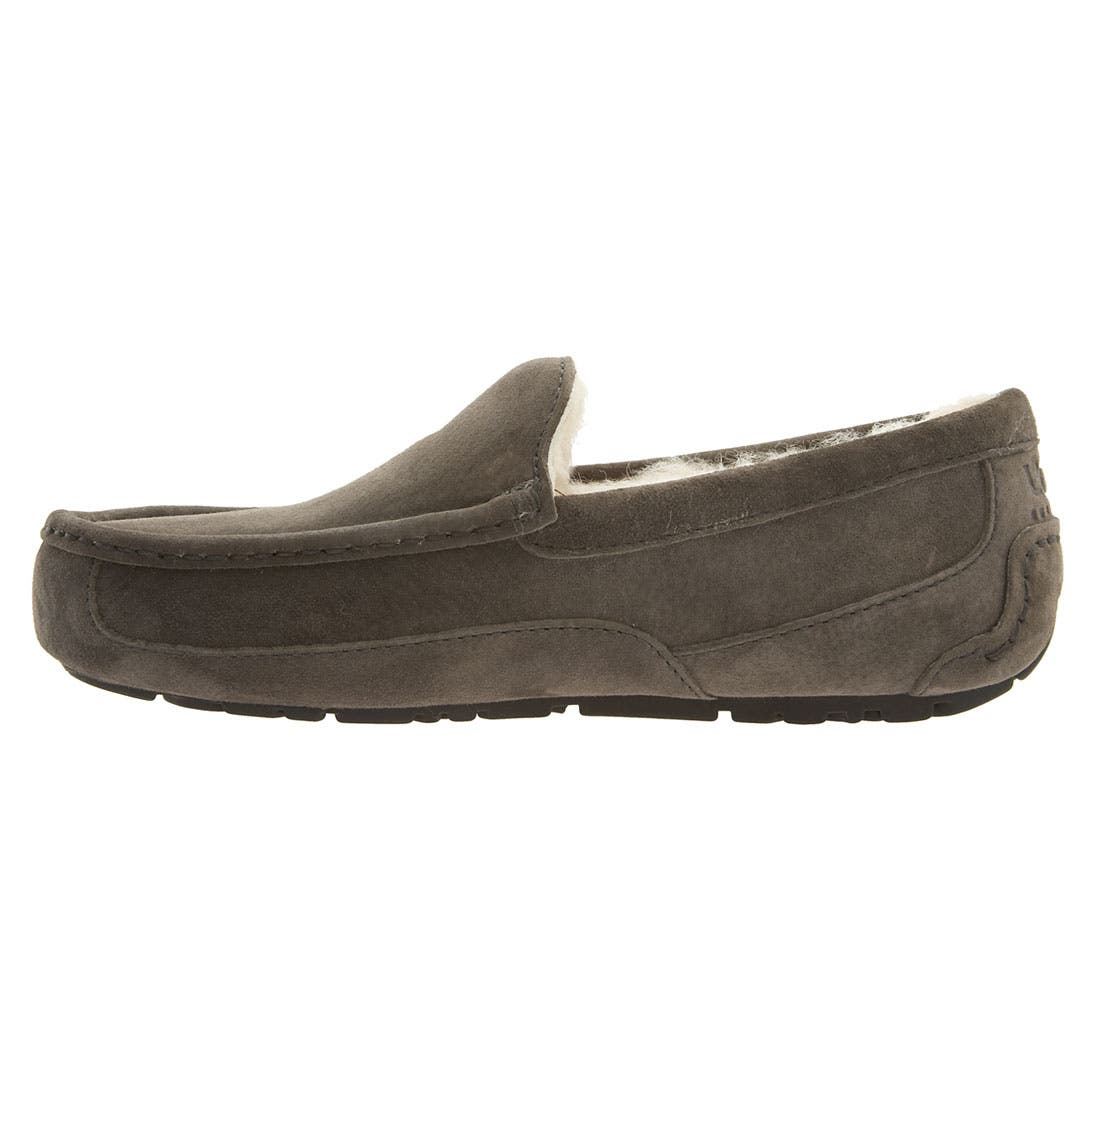 Ascot Suede Slipper,                             Alternate thumbnail 7, color,                             CHARCOAL